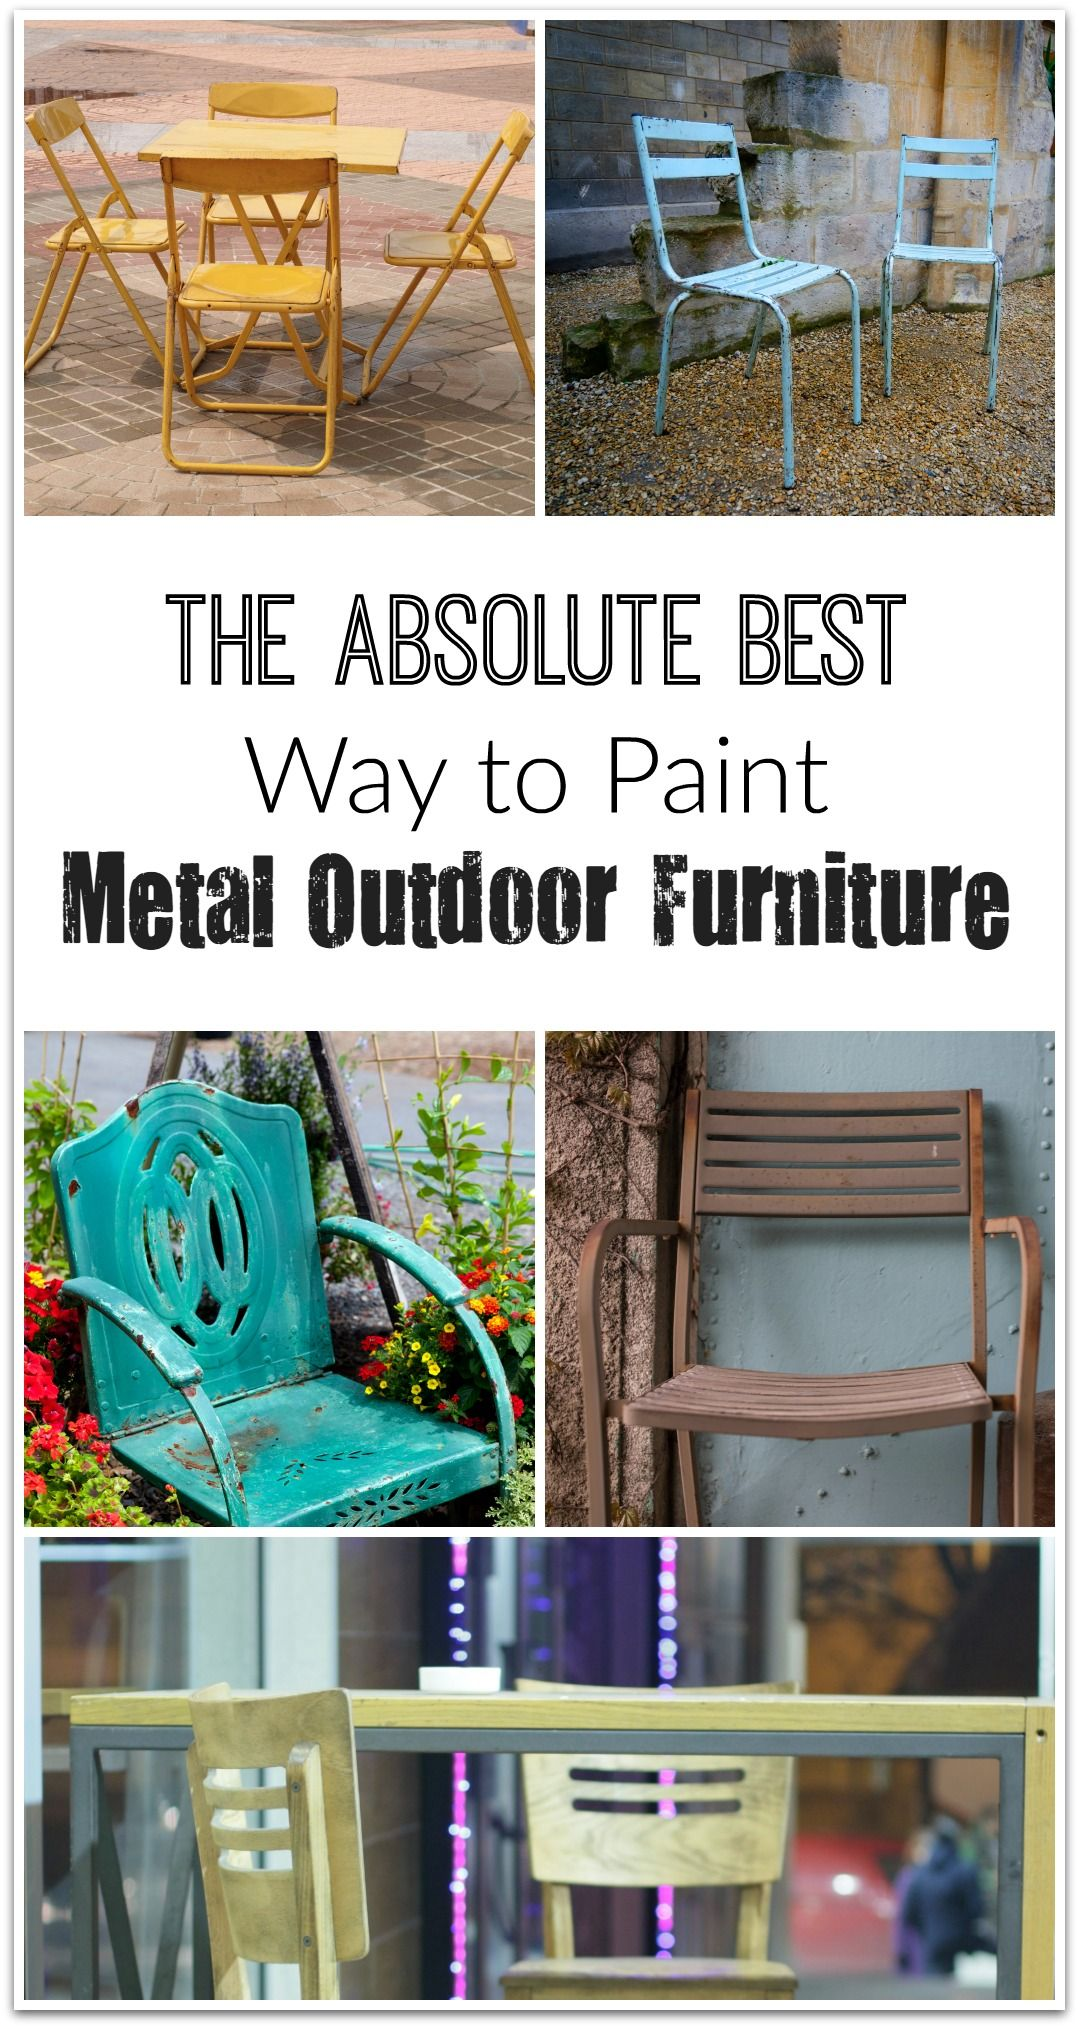 If You Re Thinking About Painting Your Metal Outdoor Furniture Here Is The Best Way To Roach